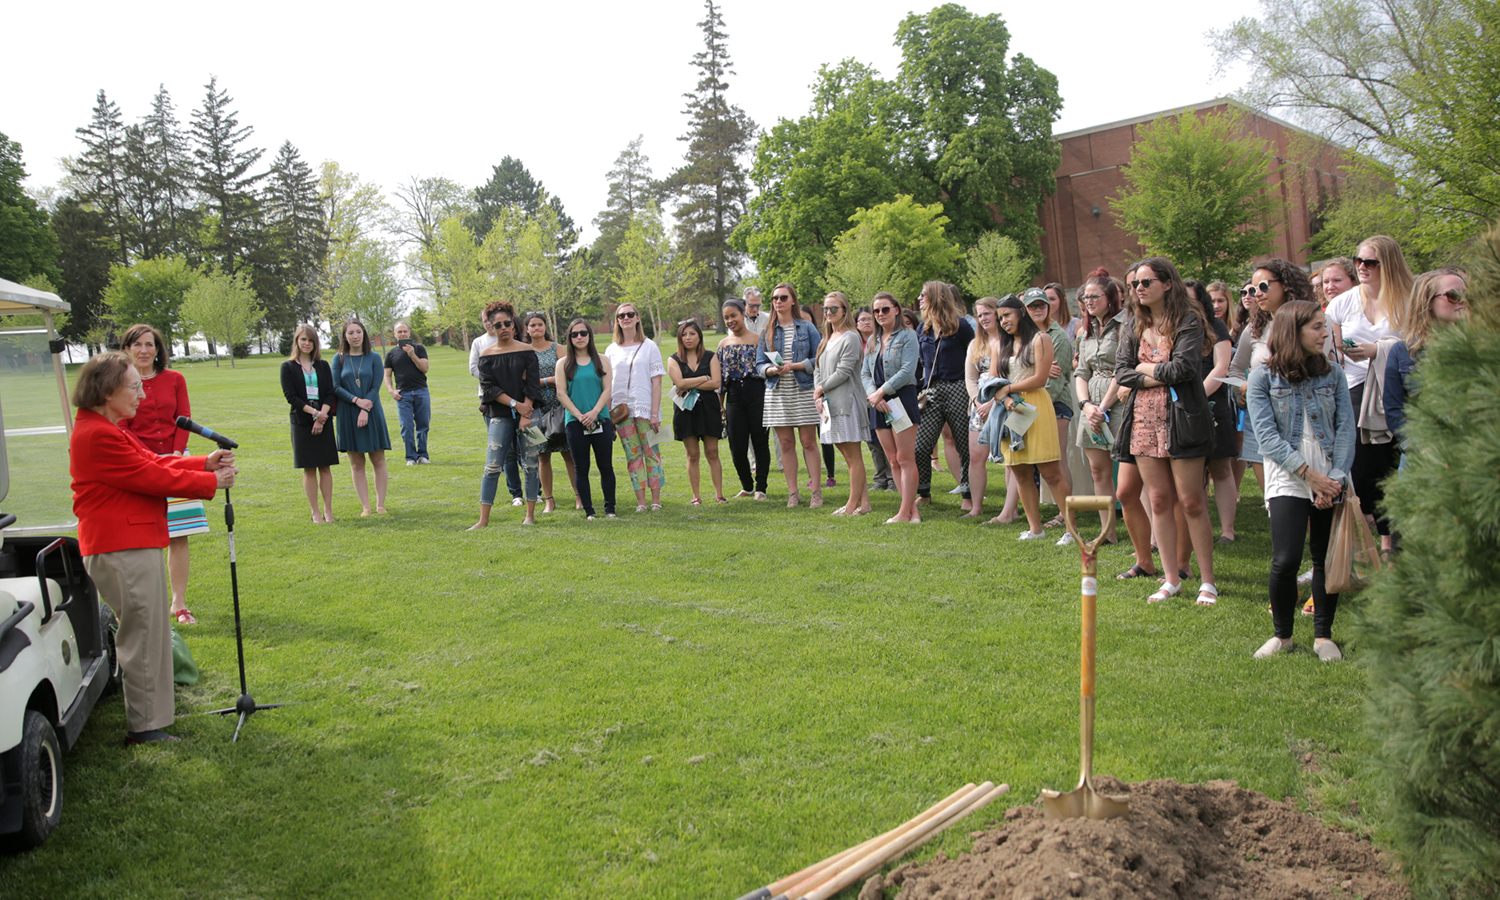 At 102 years old, centenarian Alta Boyer '36 speaks to the William Smith Class of 2017 about the history and traditions of William Smith College at the annual tree planting following the William Smith Senior Welcome Toast.